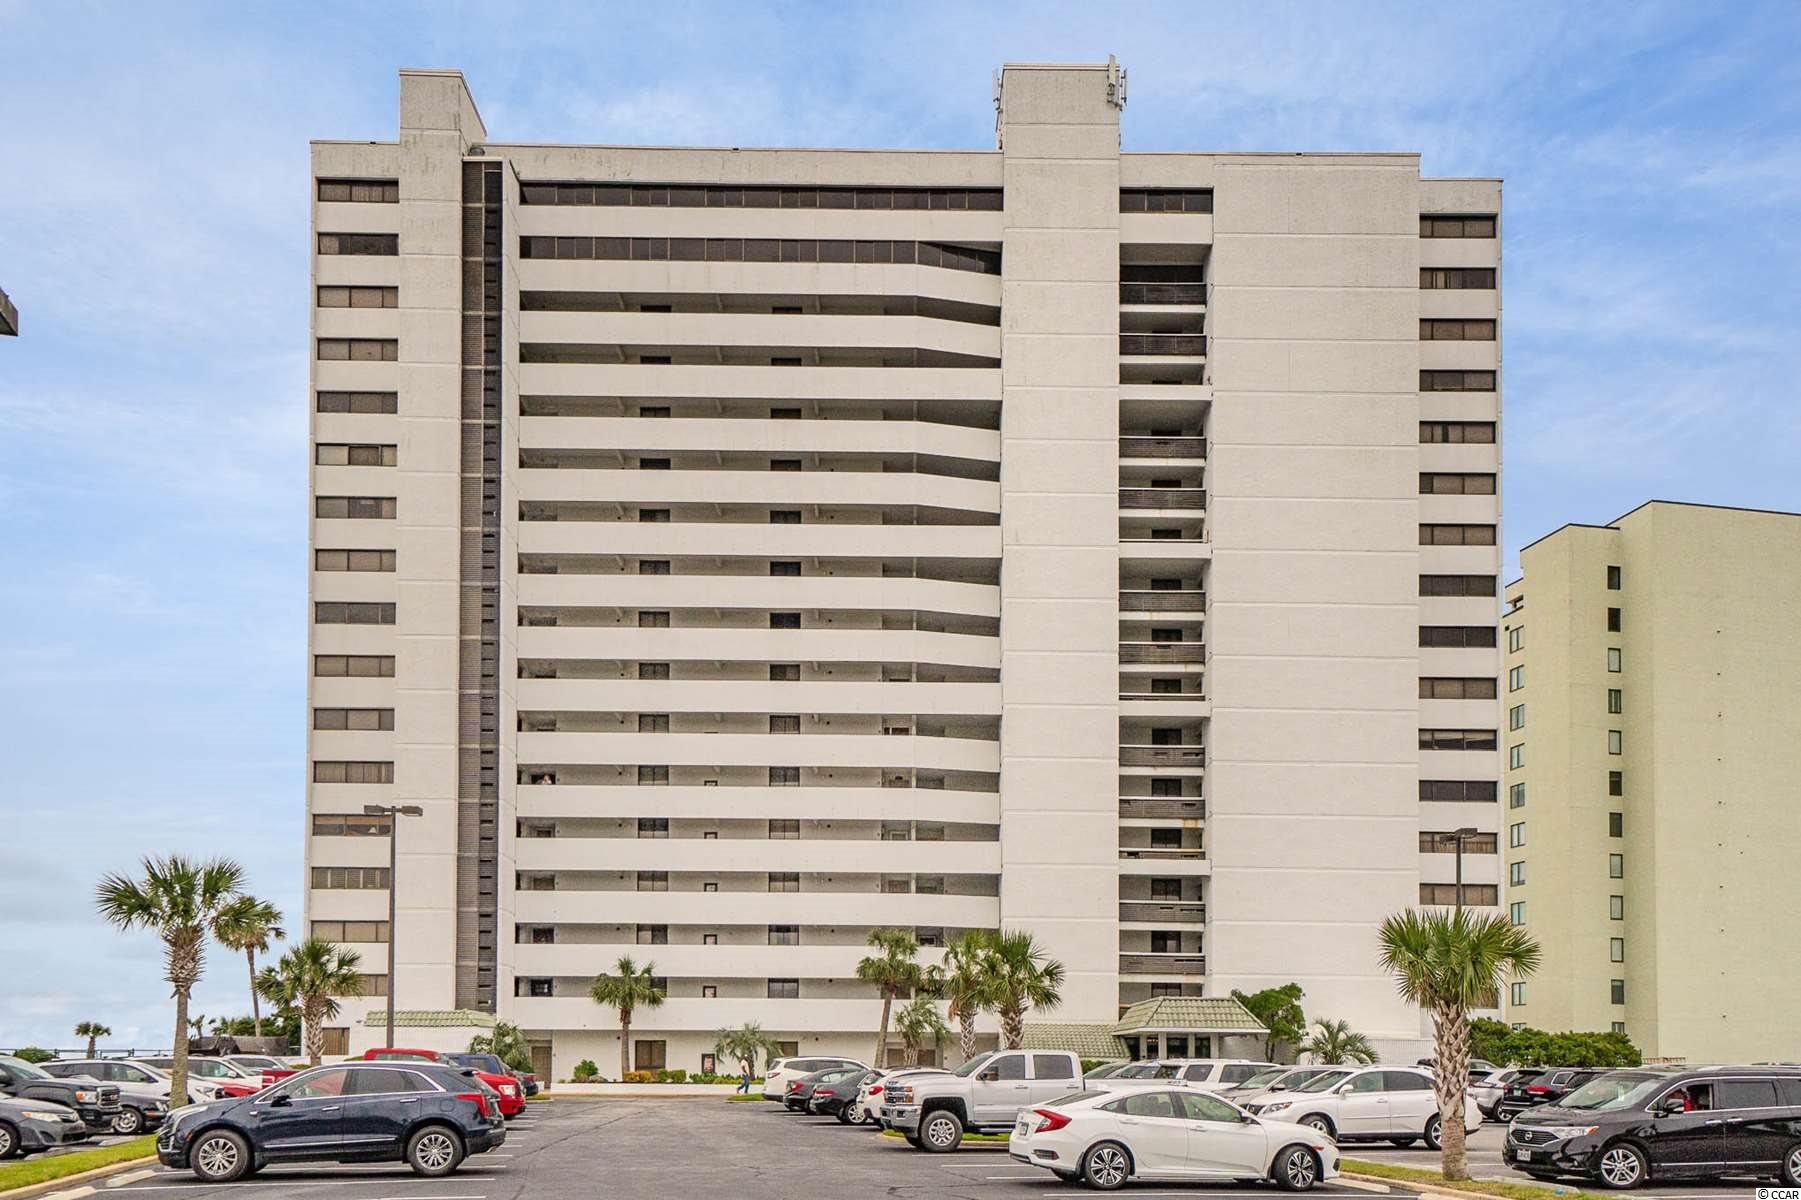 Beautiful 2 bed, 2 bath Oceanfront condo in the sought after Brigadune in the Arcadian section of Myrtle Beach. Excellent condition with breathtaking views of the ocean from the 14th floor balcony. Enter through the foyer to the oversized living room with plenty of natural light throughout the condo. Kitchen has beautiful cabinets that are natural maple Omish. Views of the ocean from nearly any room in the unit. Brigadune amenities include outdoor pool, tennis courts, fitness room, lounge and dining area. Conveniently located to all of the shopping, dining & entertainment, area attractions and golf that Myrtle Beach has to offer.